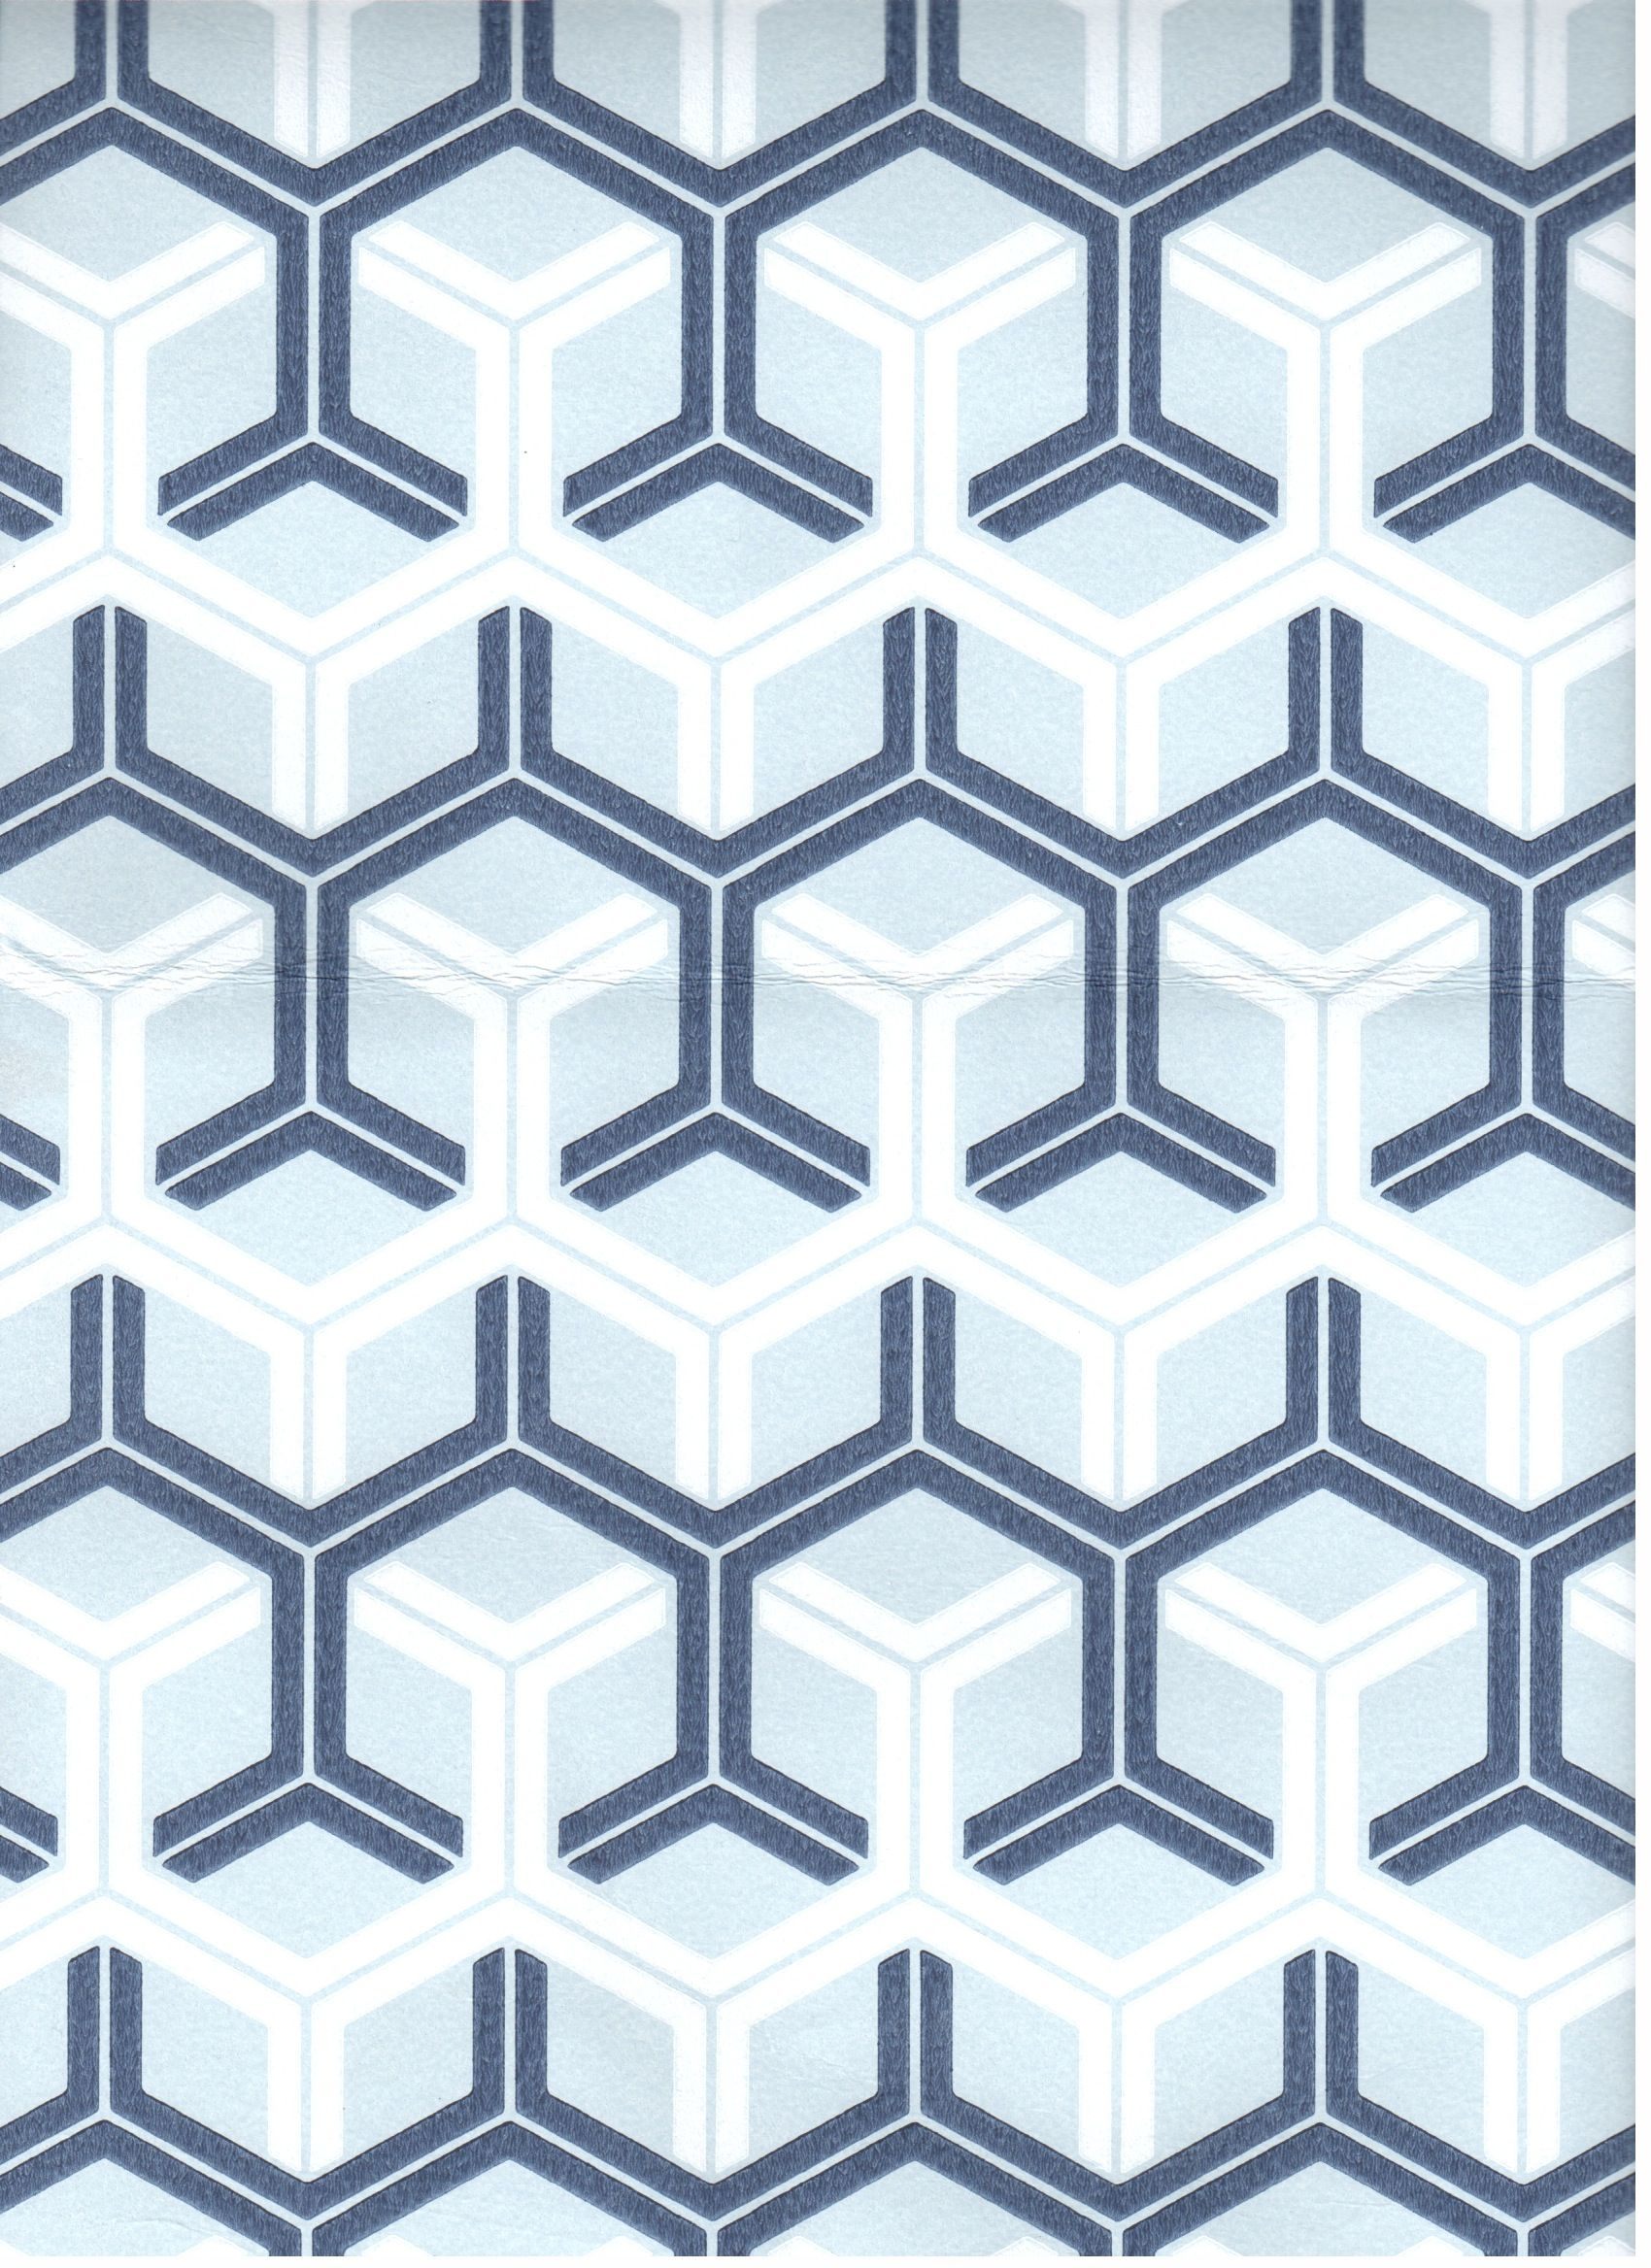 Geometric Navy, Blue, and White Wallpaper for Ceiling by